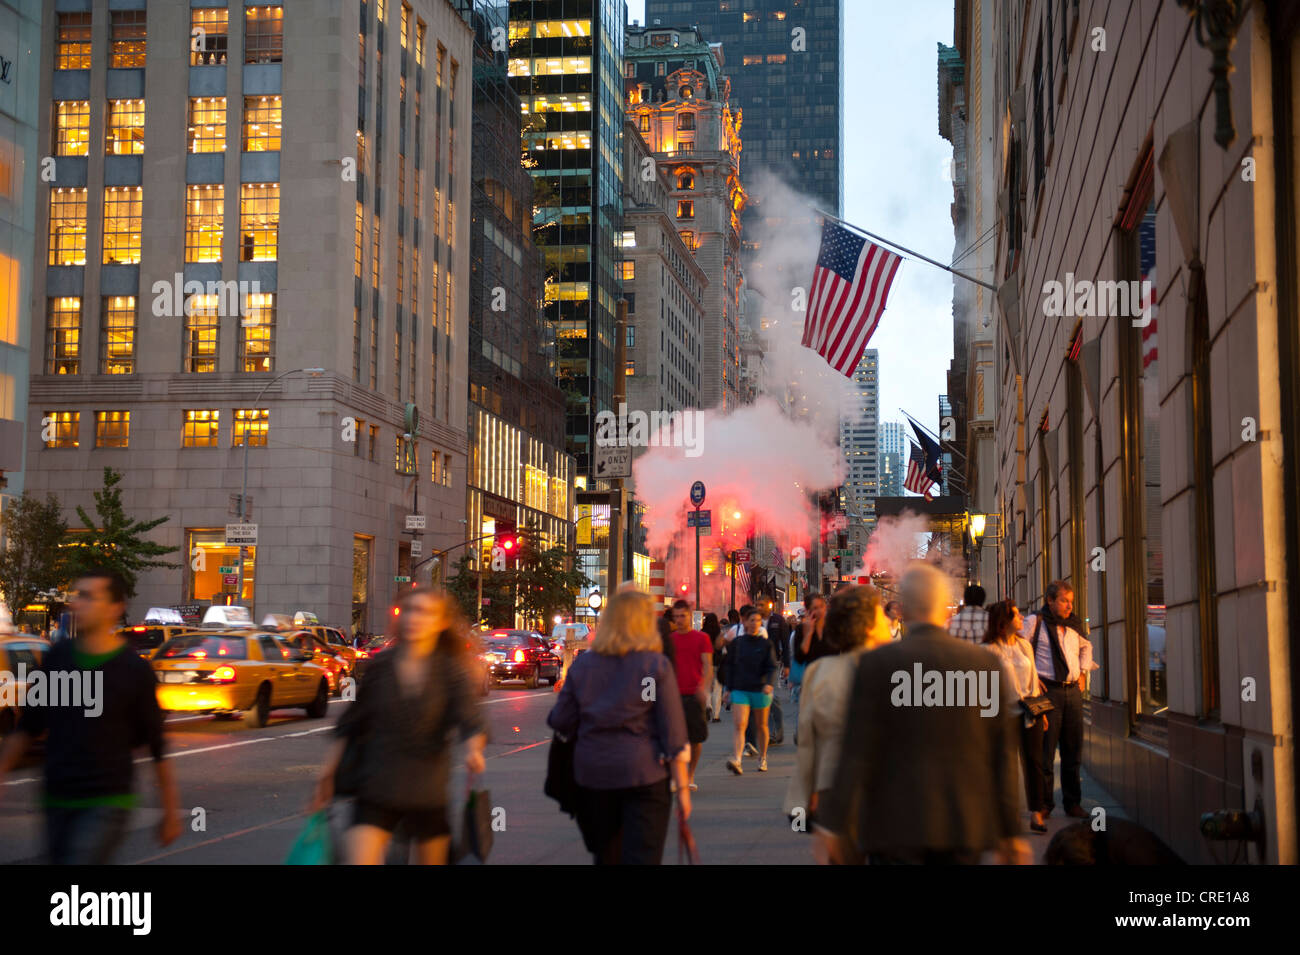 Many people on 5th Avenue close to Trump Tower in the evening, Midtown, Manhattan, New York City, USA, North America - Stock Image